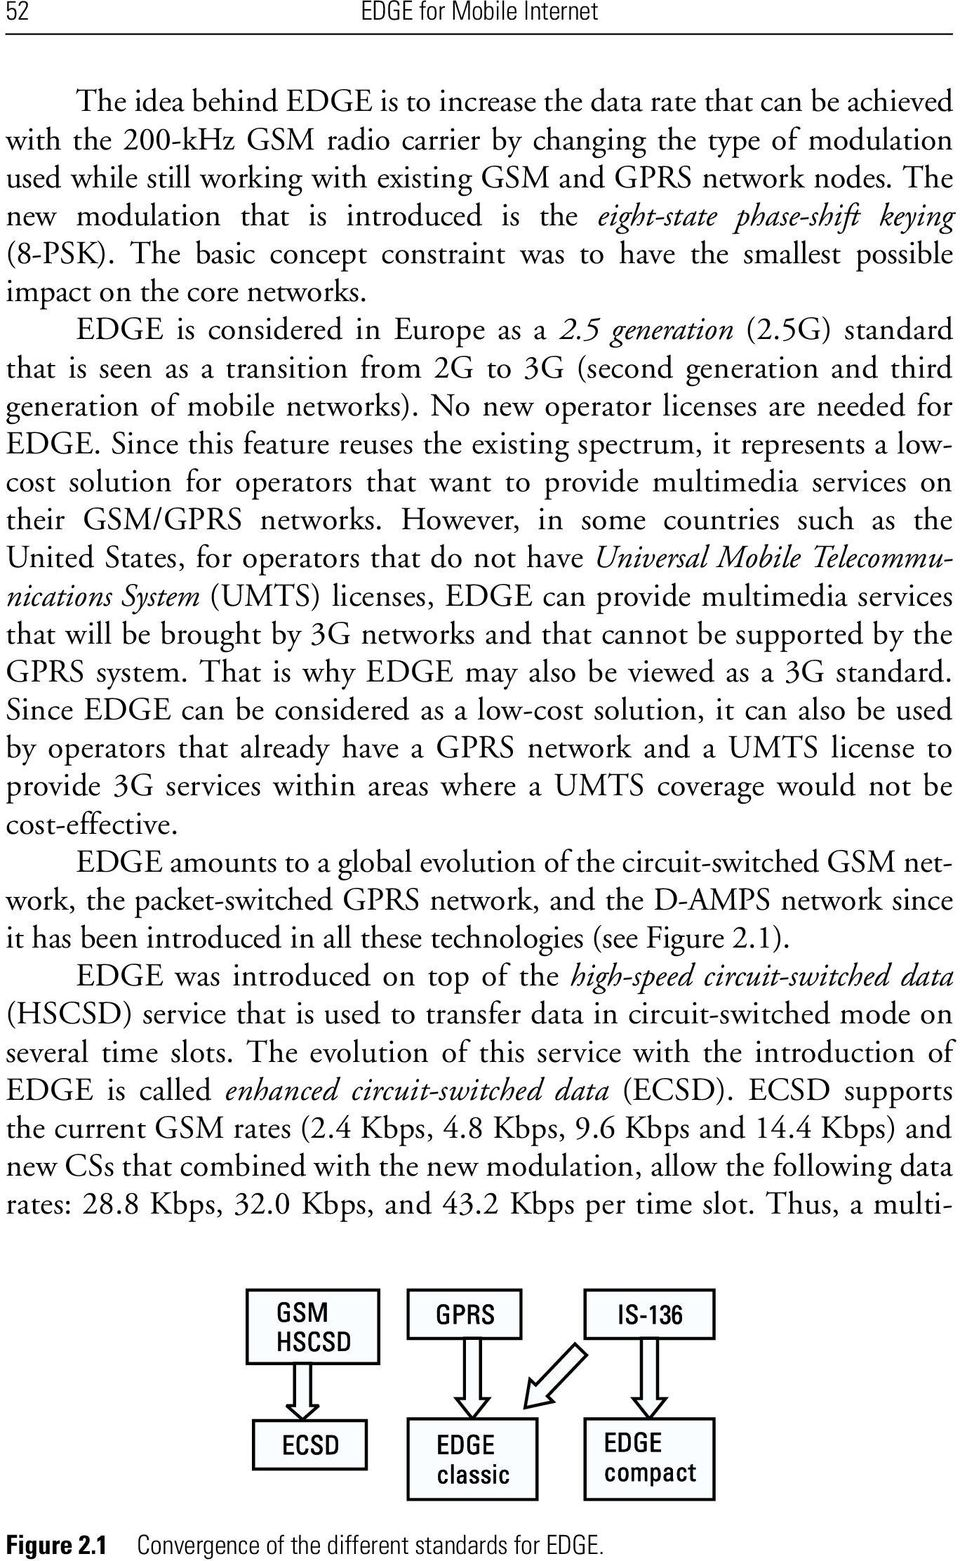 The basic concept constraint was to have the smallest possible impact on the core networks. EDGE is considered in Europe as a 2.5 generation (2.